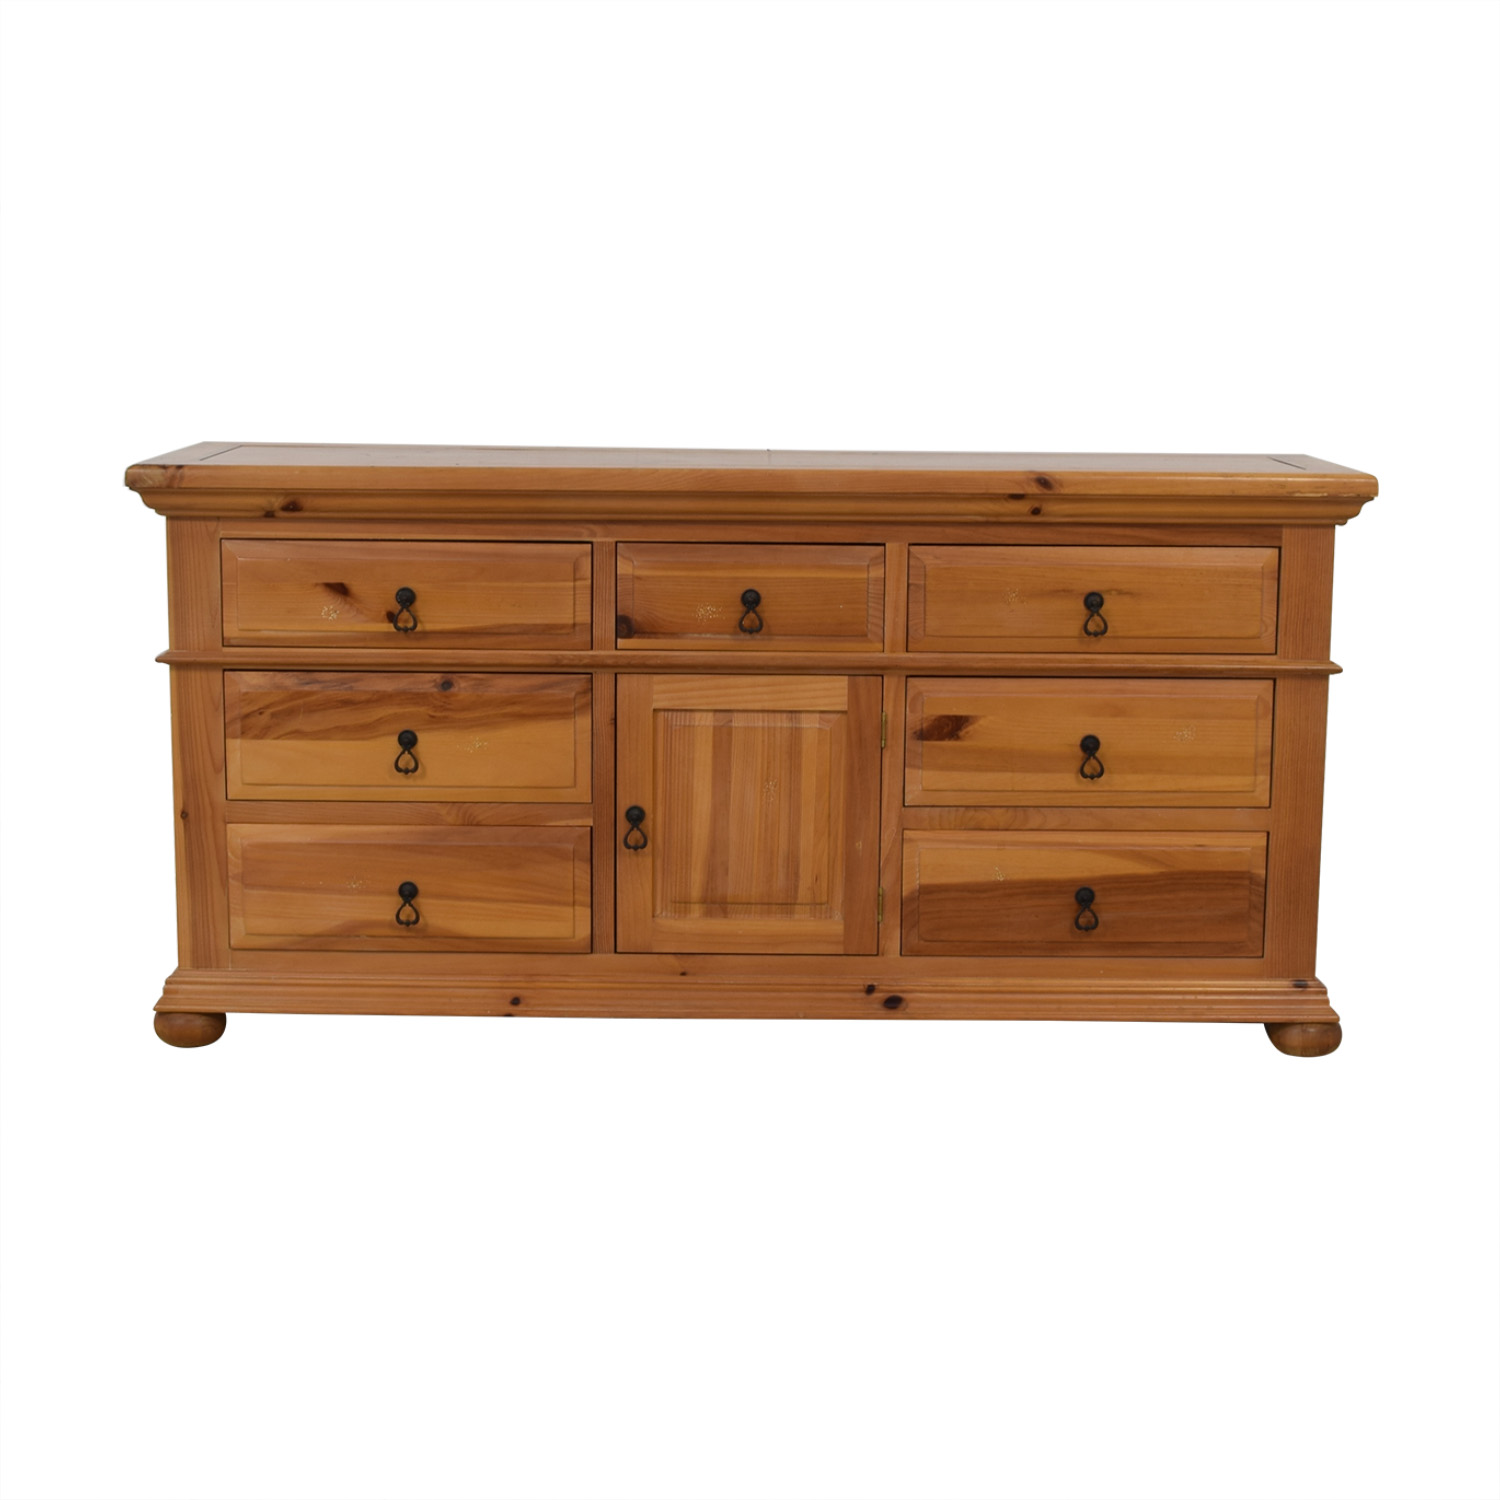 Broyhill Furniture Broyhill Furniture Wood Dresser with Cabinet second hand